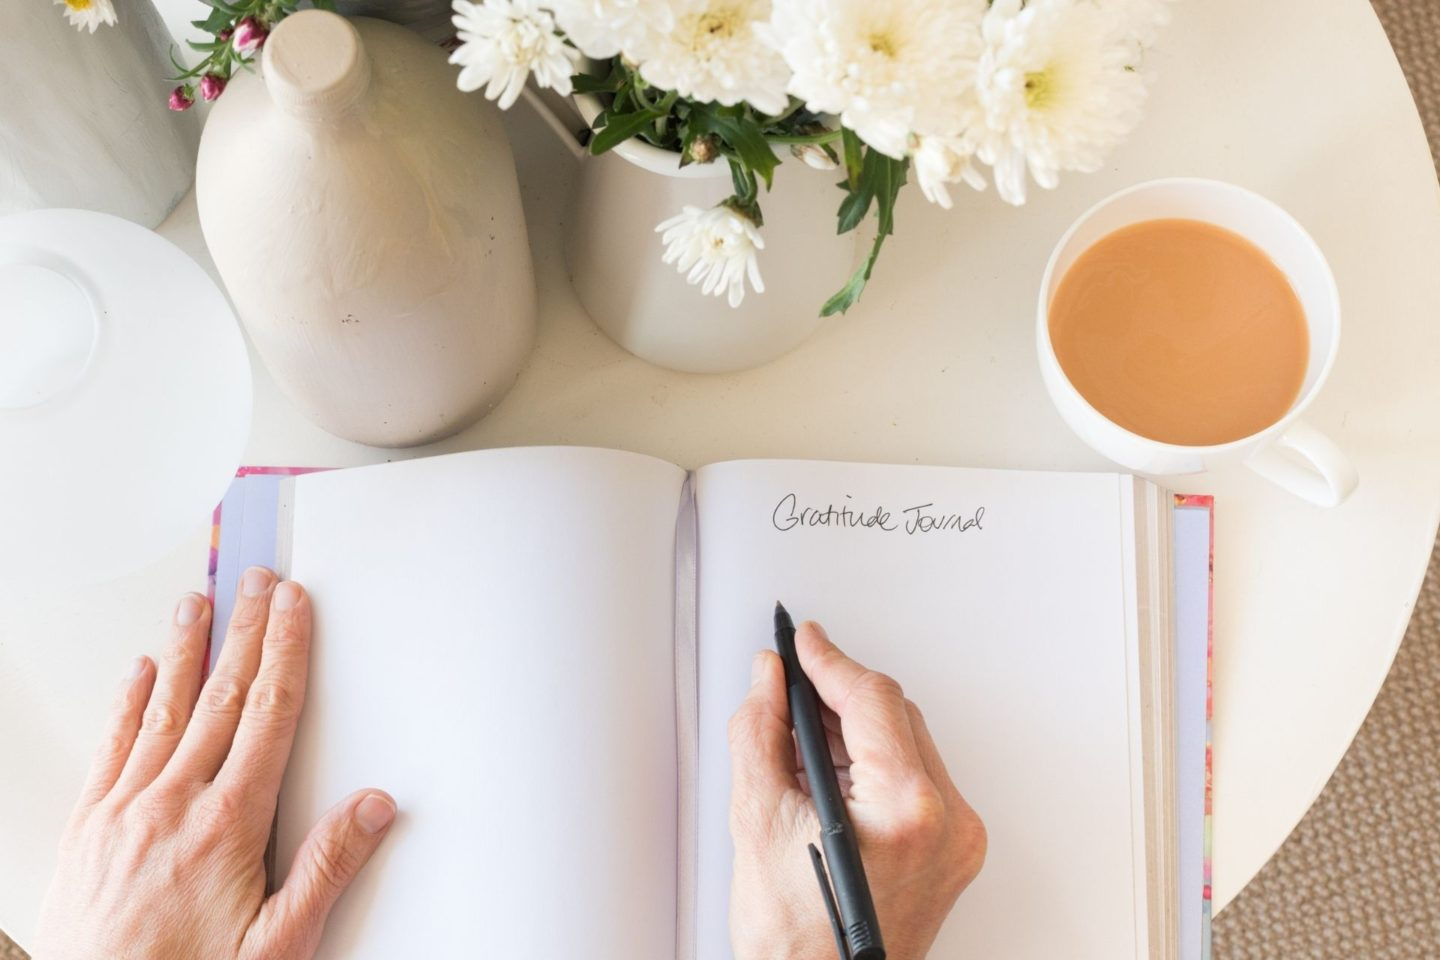 35 Gratitude Journal Prompts To Help You Appreciate Your Life